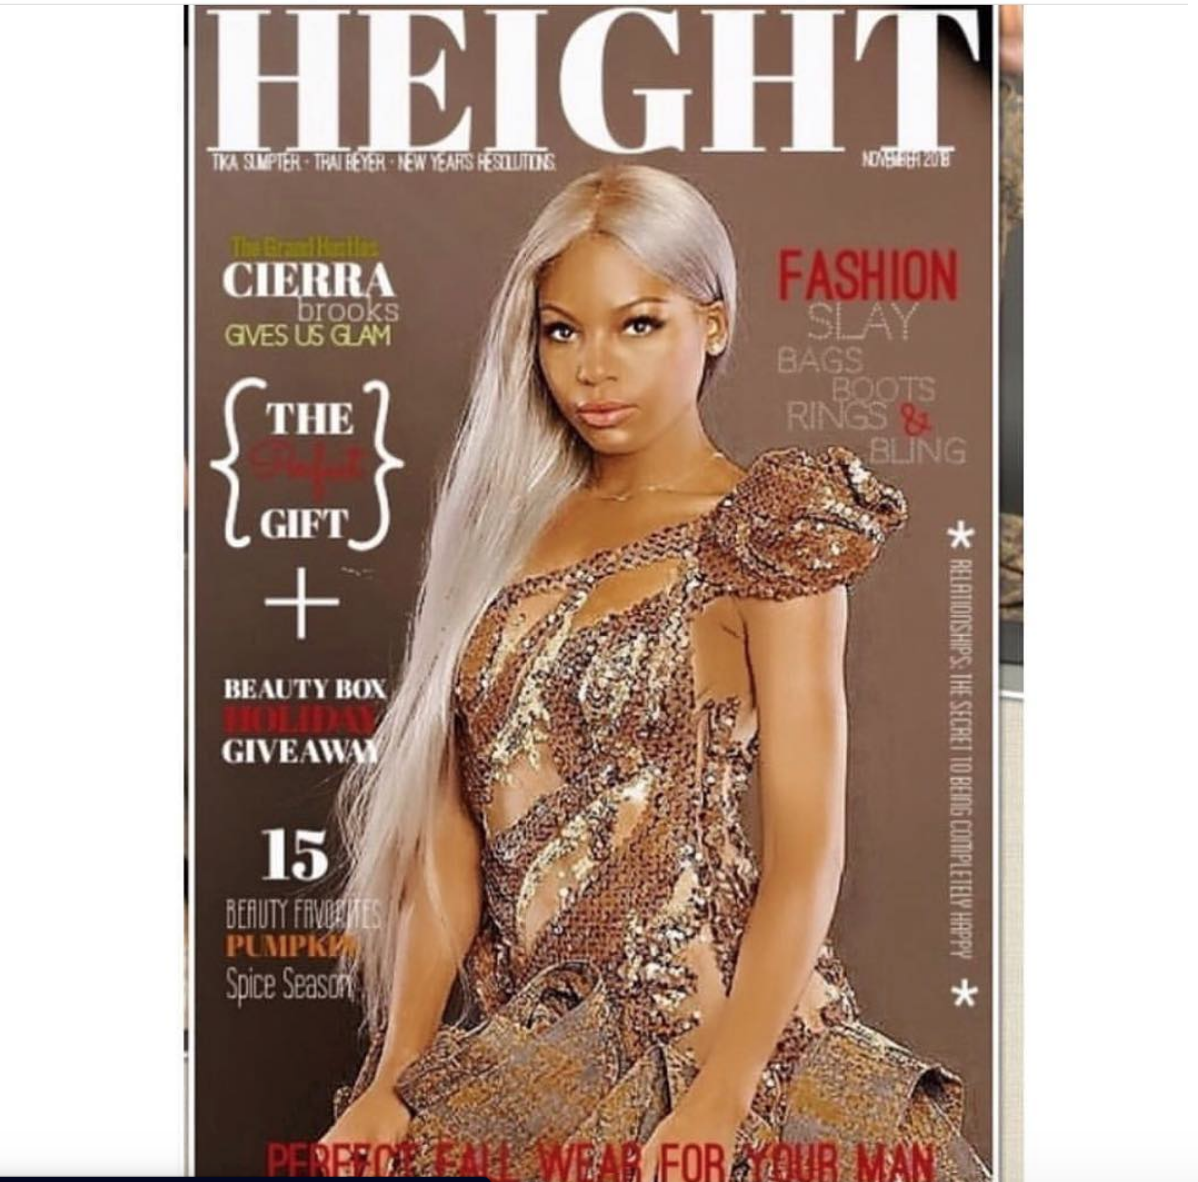 COVER! The beautiful  @bet  star from  #1  hit show  @grandhustlebet   @officialcierrabrooks gracing the cover of America's premier urban magazine  @heightmag  in a dress by our French designer  @hayariparis  @shotbysham  Style and fashion provided by  #ivanbittonstylehouse